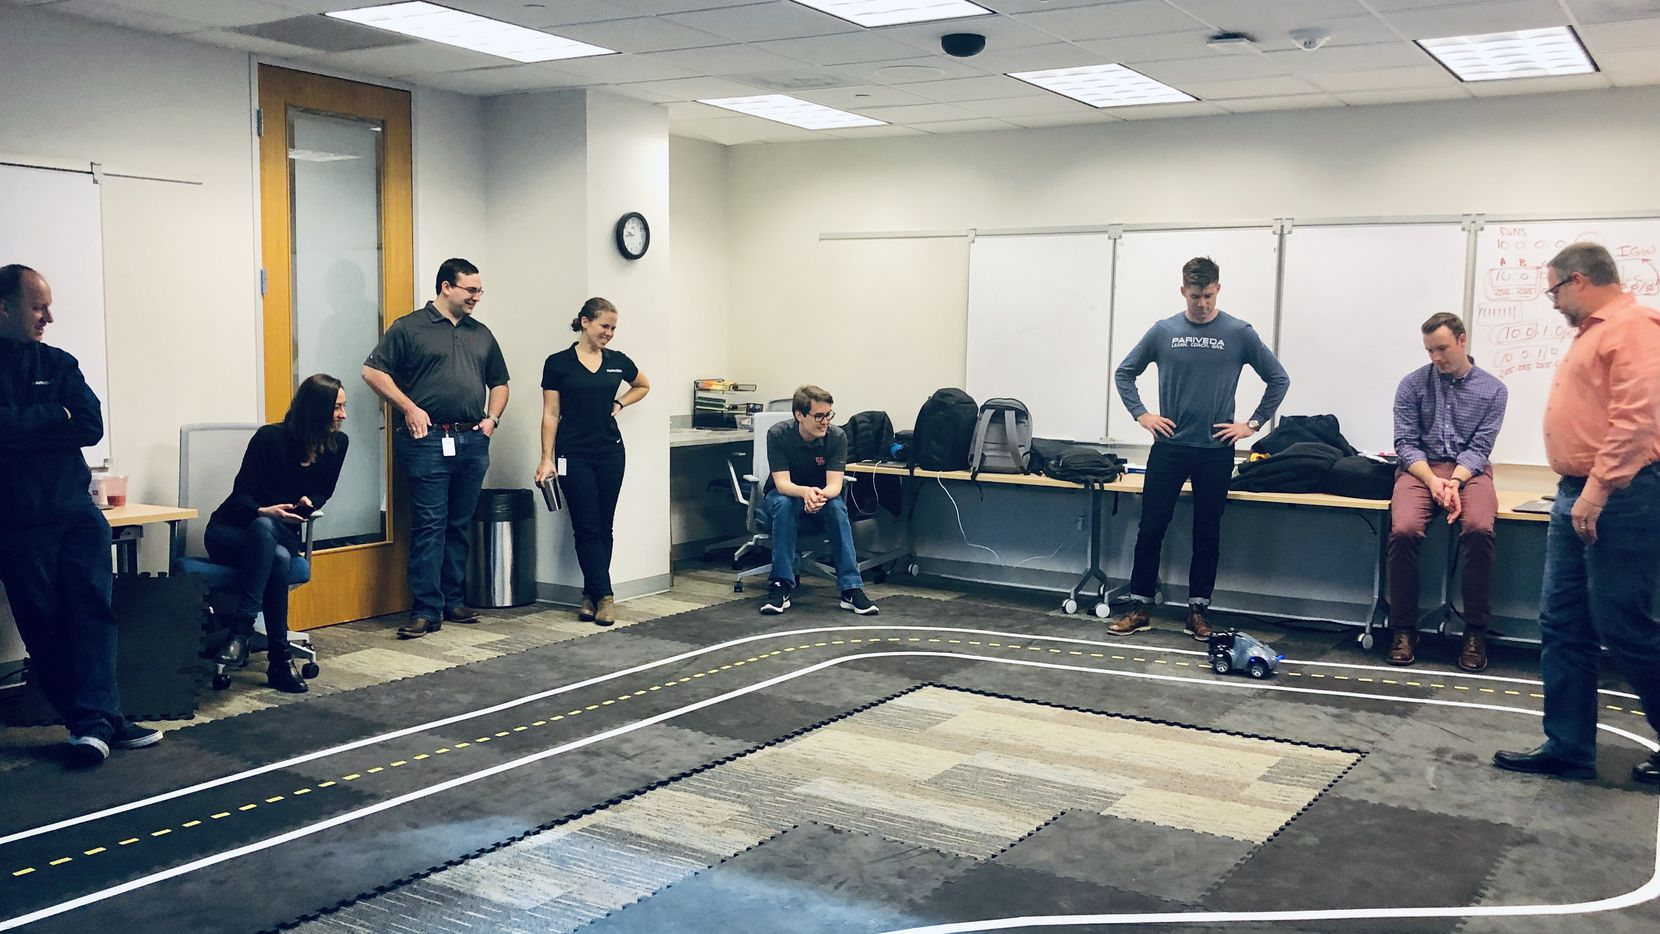 Developer School is a one-week training course for new hires at Pariveda Solutions. On Friday at the end of the session, there's an WS DeepRacer competition.